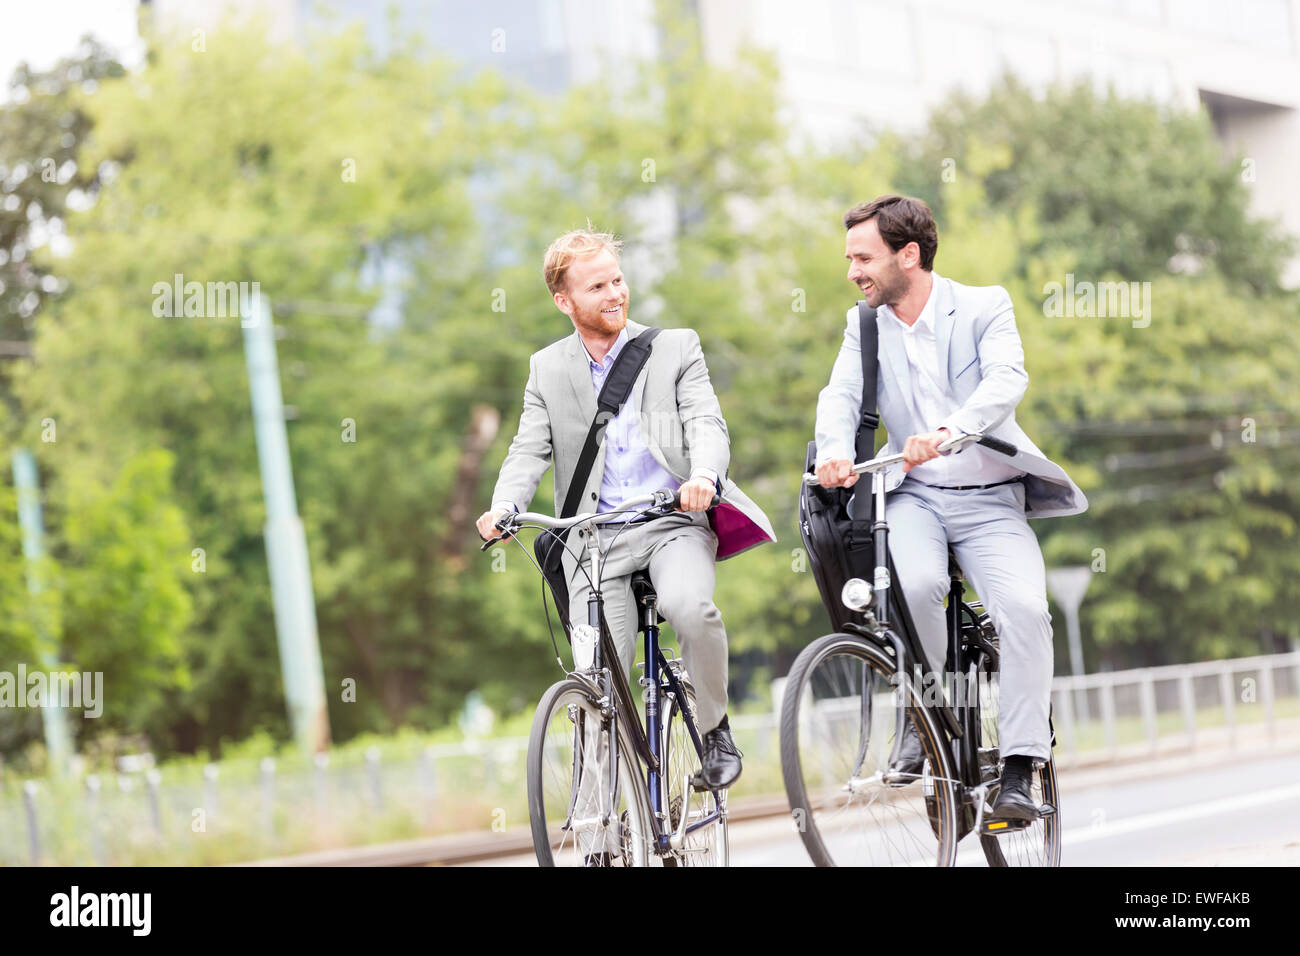 Businessmen talking while cycling outdoors - Stock Image